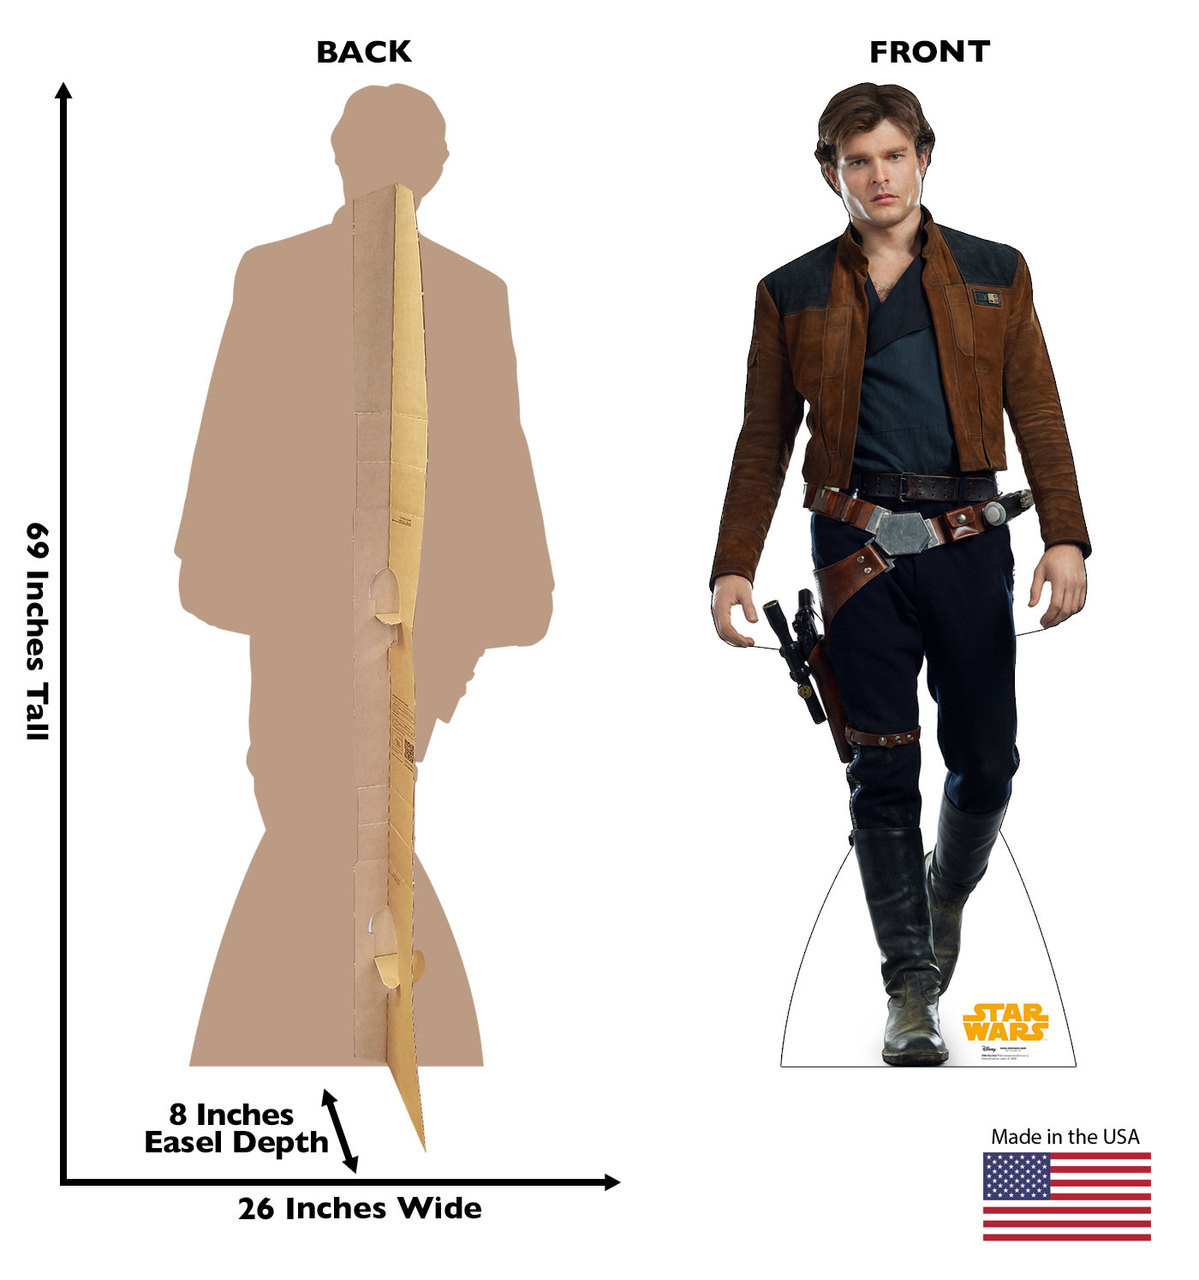 Han Solo™ Life-size cardboard standee back and front with dimensions.